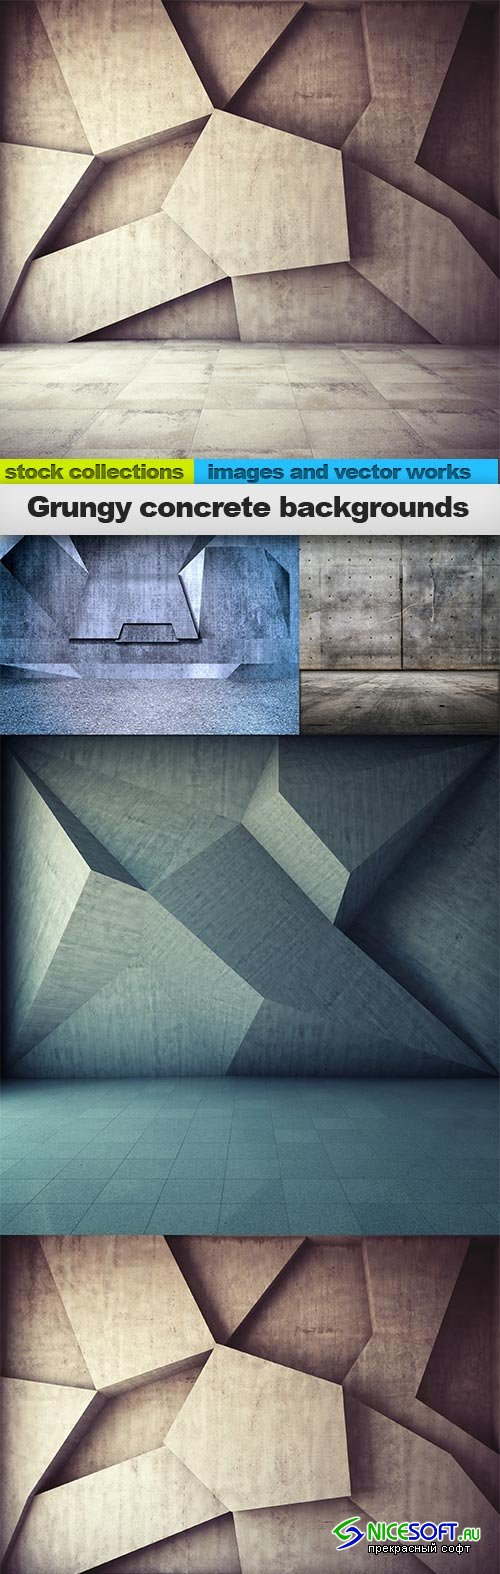 Grungy concrete backgrounds, 04 x UHQ JPEG